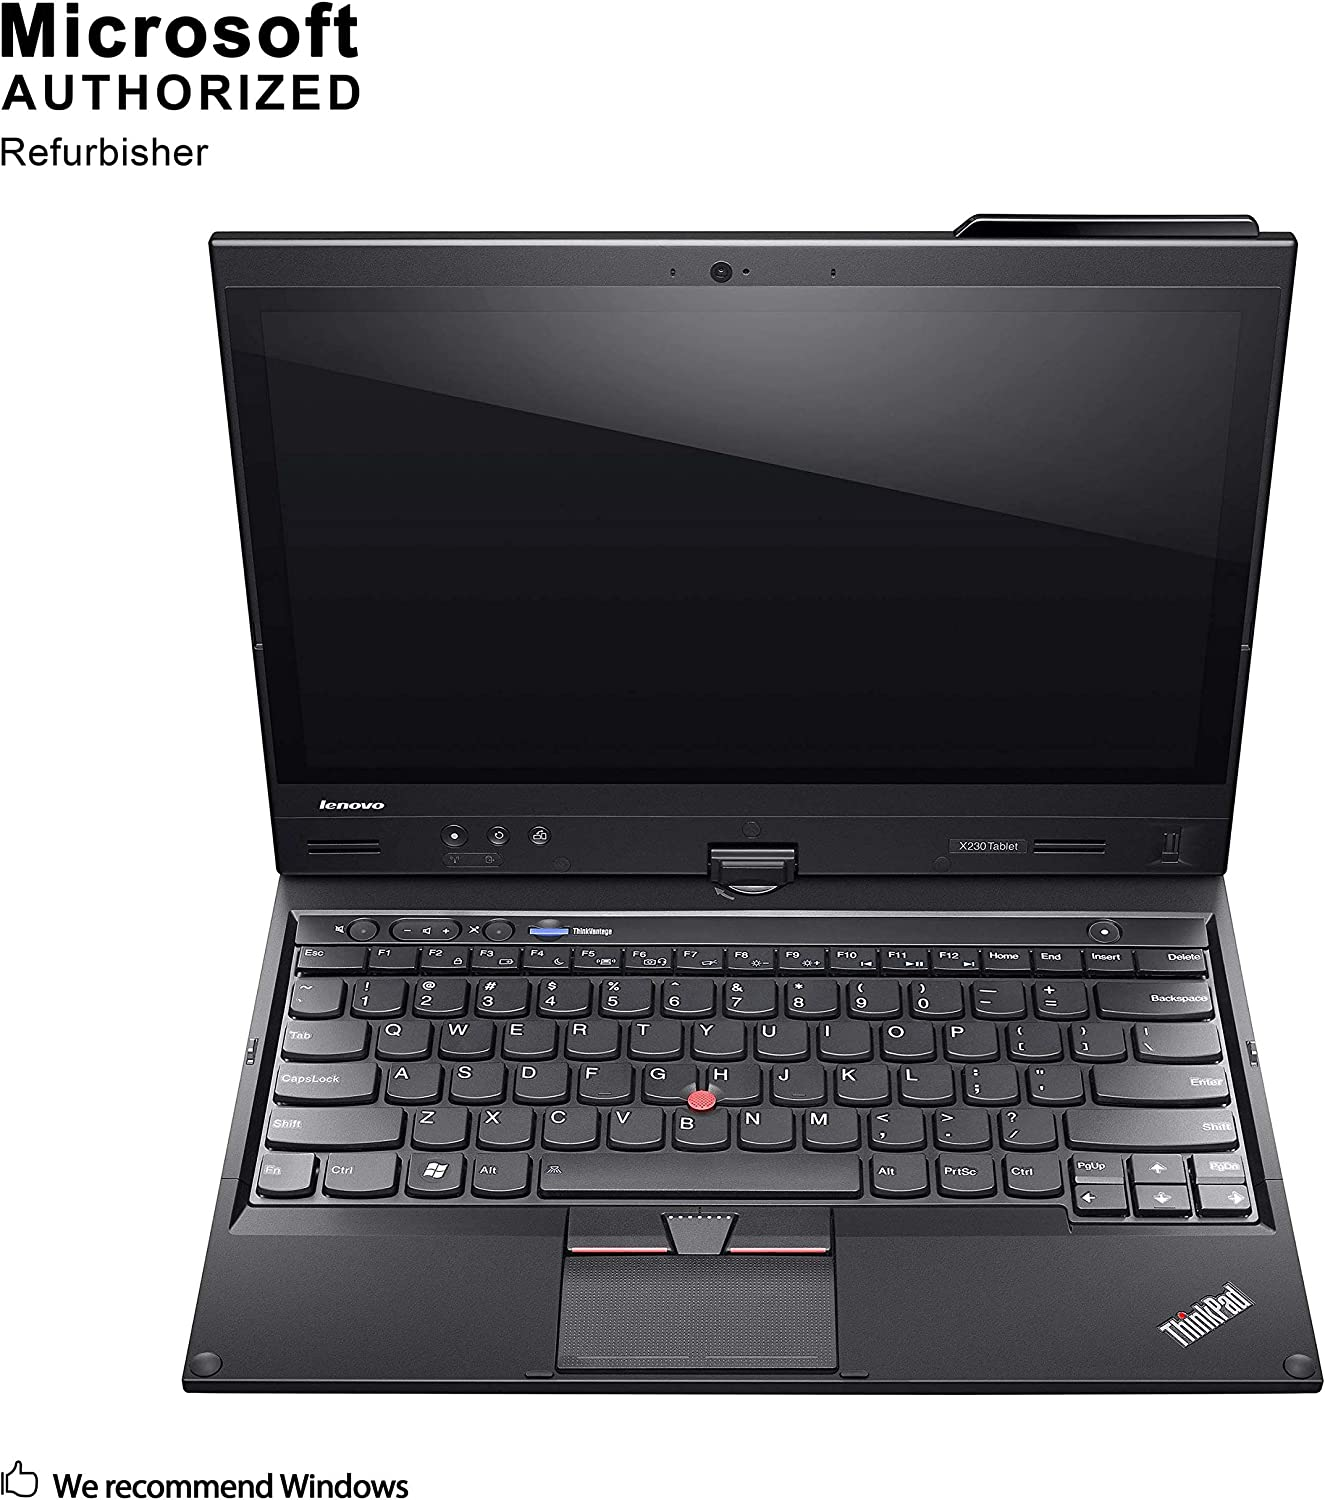 Lenovo ThinkPad X230t 12.5 Inch Convertible Laptop, Intel Core i5 3320M up to 3.3GHz, 4G DDR3, 256G SSD, WiFi, VGA, mDP, Windows 10 64 Bit Multi-Language Supports English/French/Spanish(Renewed)